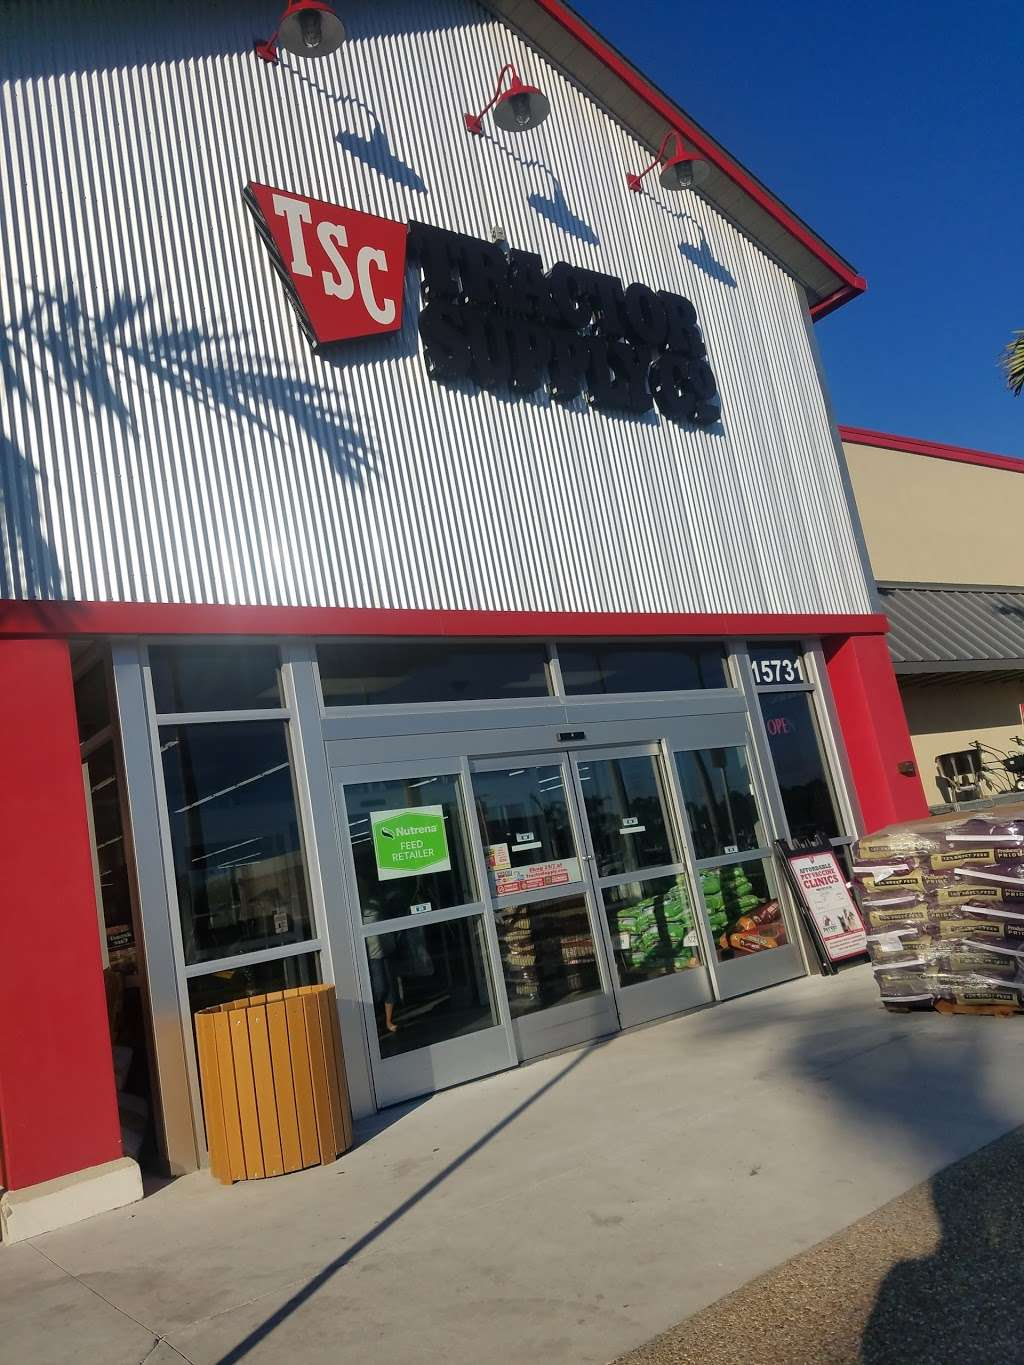 Tractor Supply Co. - hardware store  | Photo 5 of 10 | Address: 15731 Southern Blvd, Loxahatchee, FL 33470, USA | Phone: (561) 333-2223